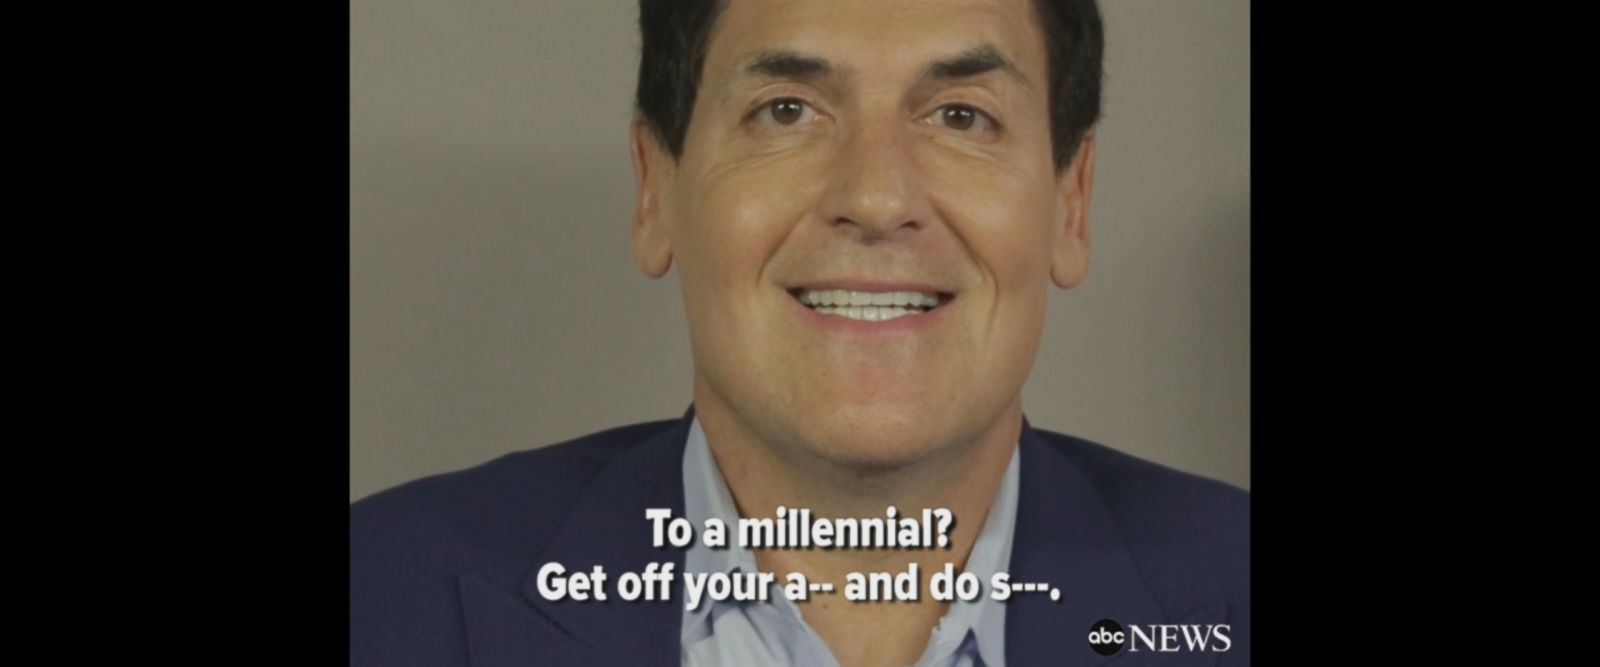 "Shark Tank's Mark Cuban reveals his biggest business regret, provides advice to millennials and reveals his potential 2020 running mate -- ""The Rock!"""